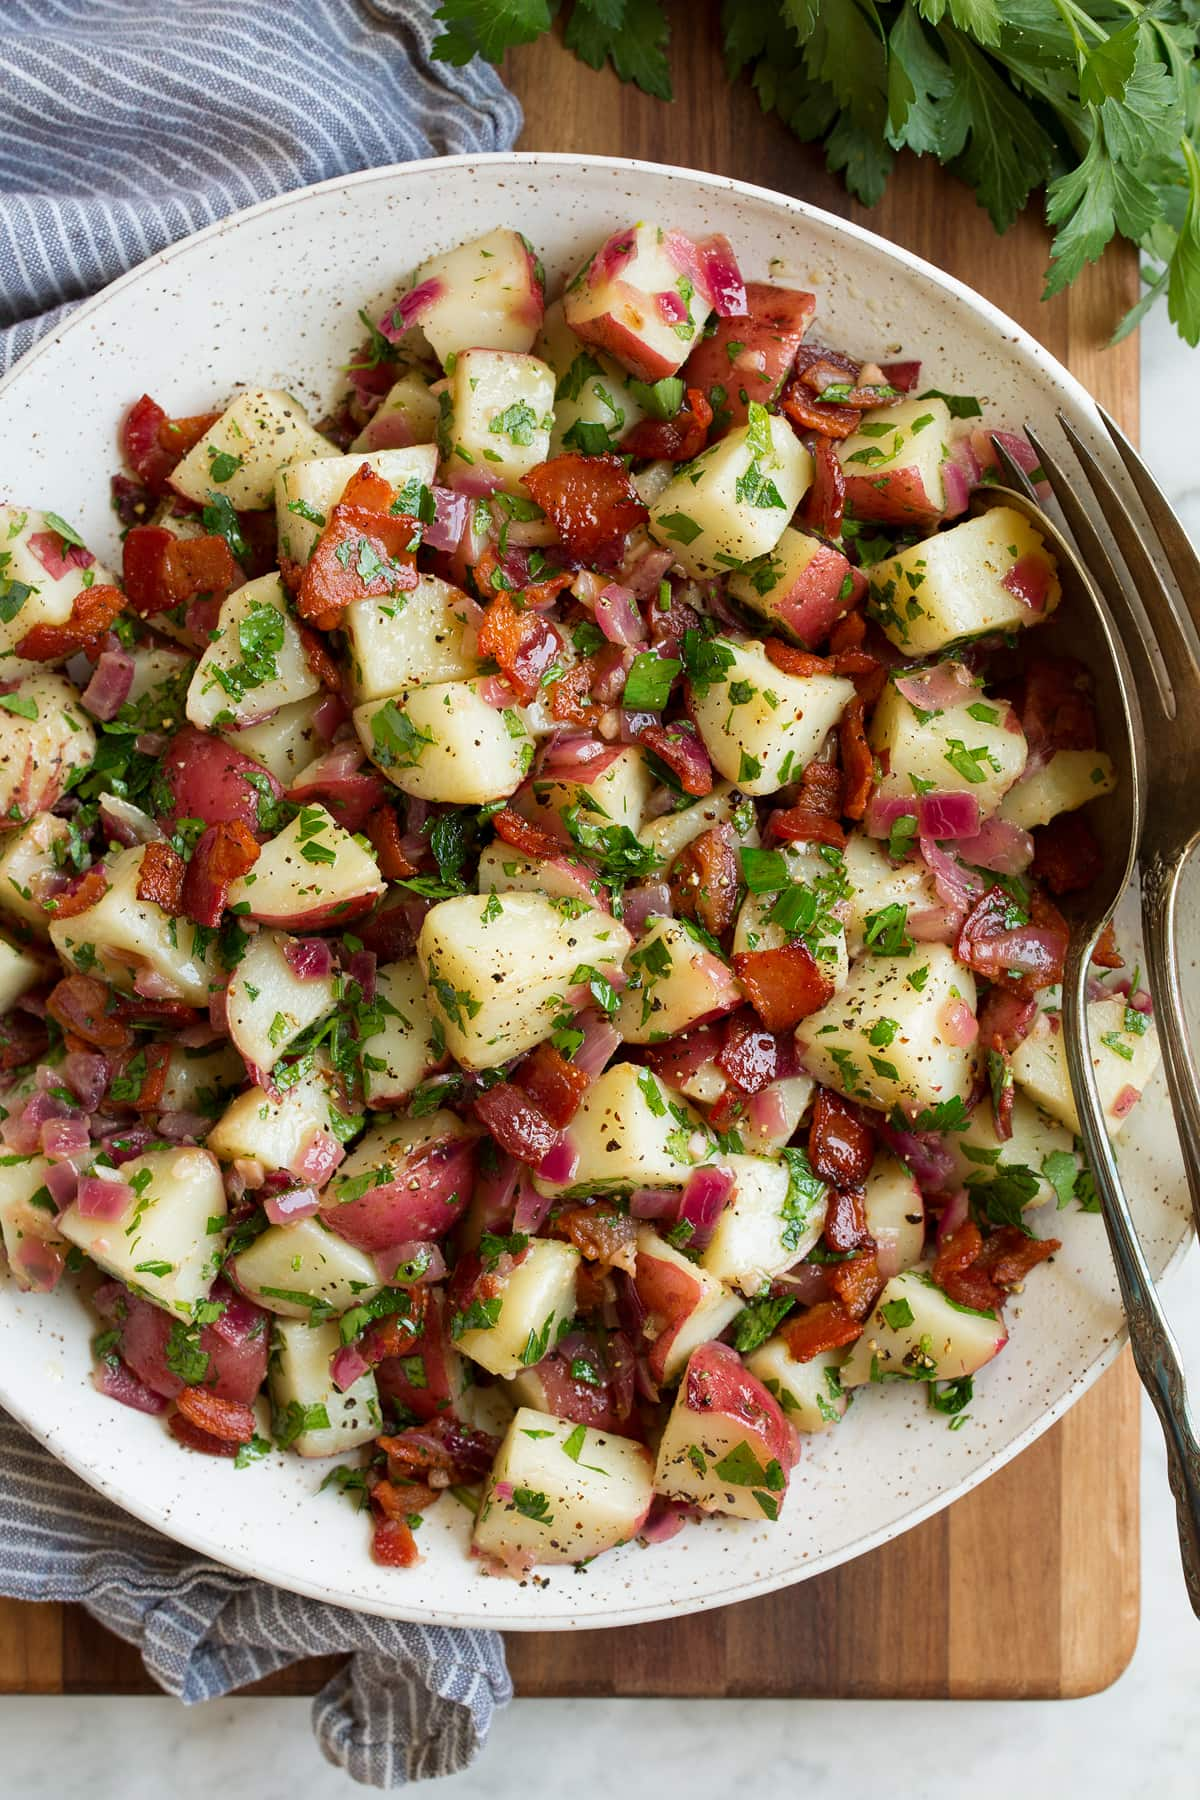 Overhead image of german potato salad in a bowl with a grey striped napkin to the side.